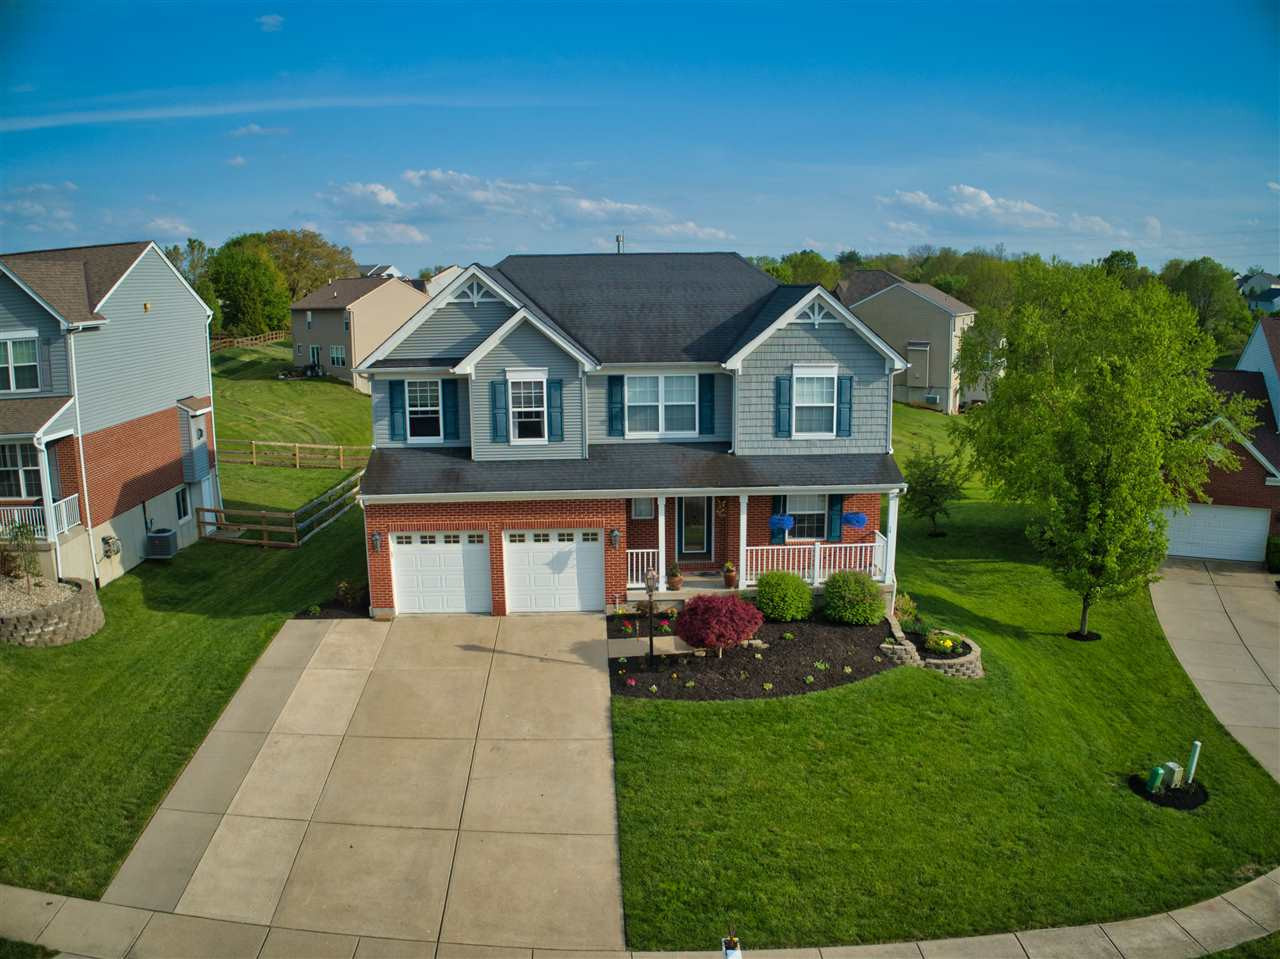 Photo 1 for 8513 Mossy Ridge Ct Florence, KY 41042